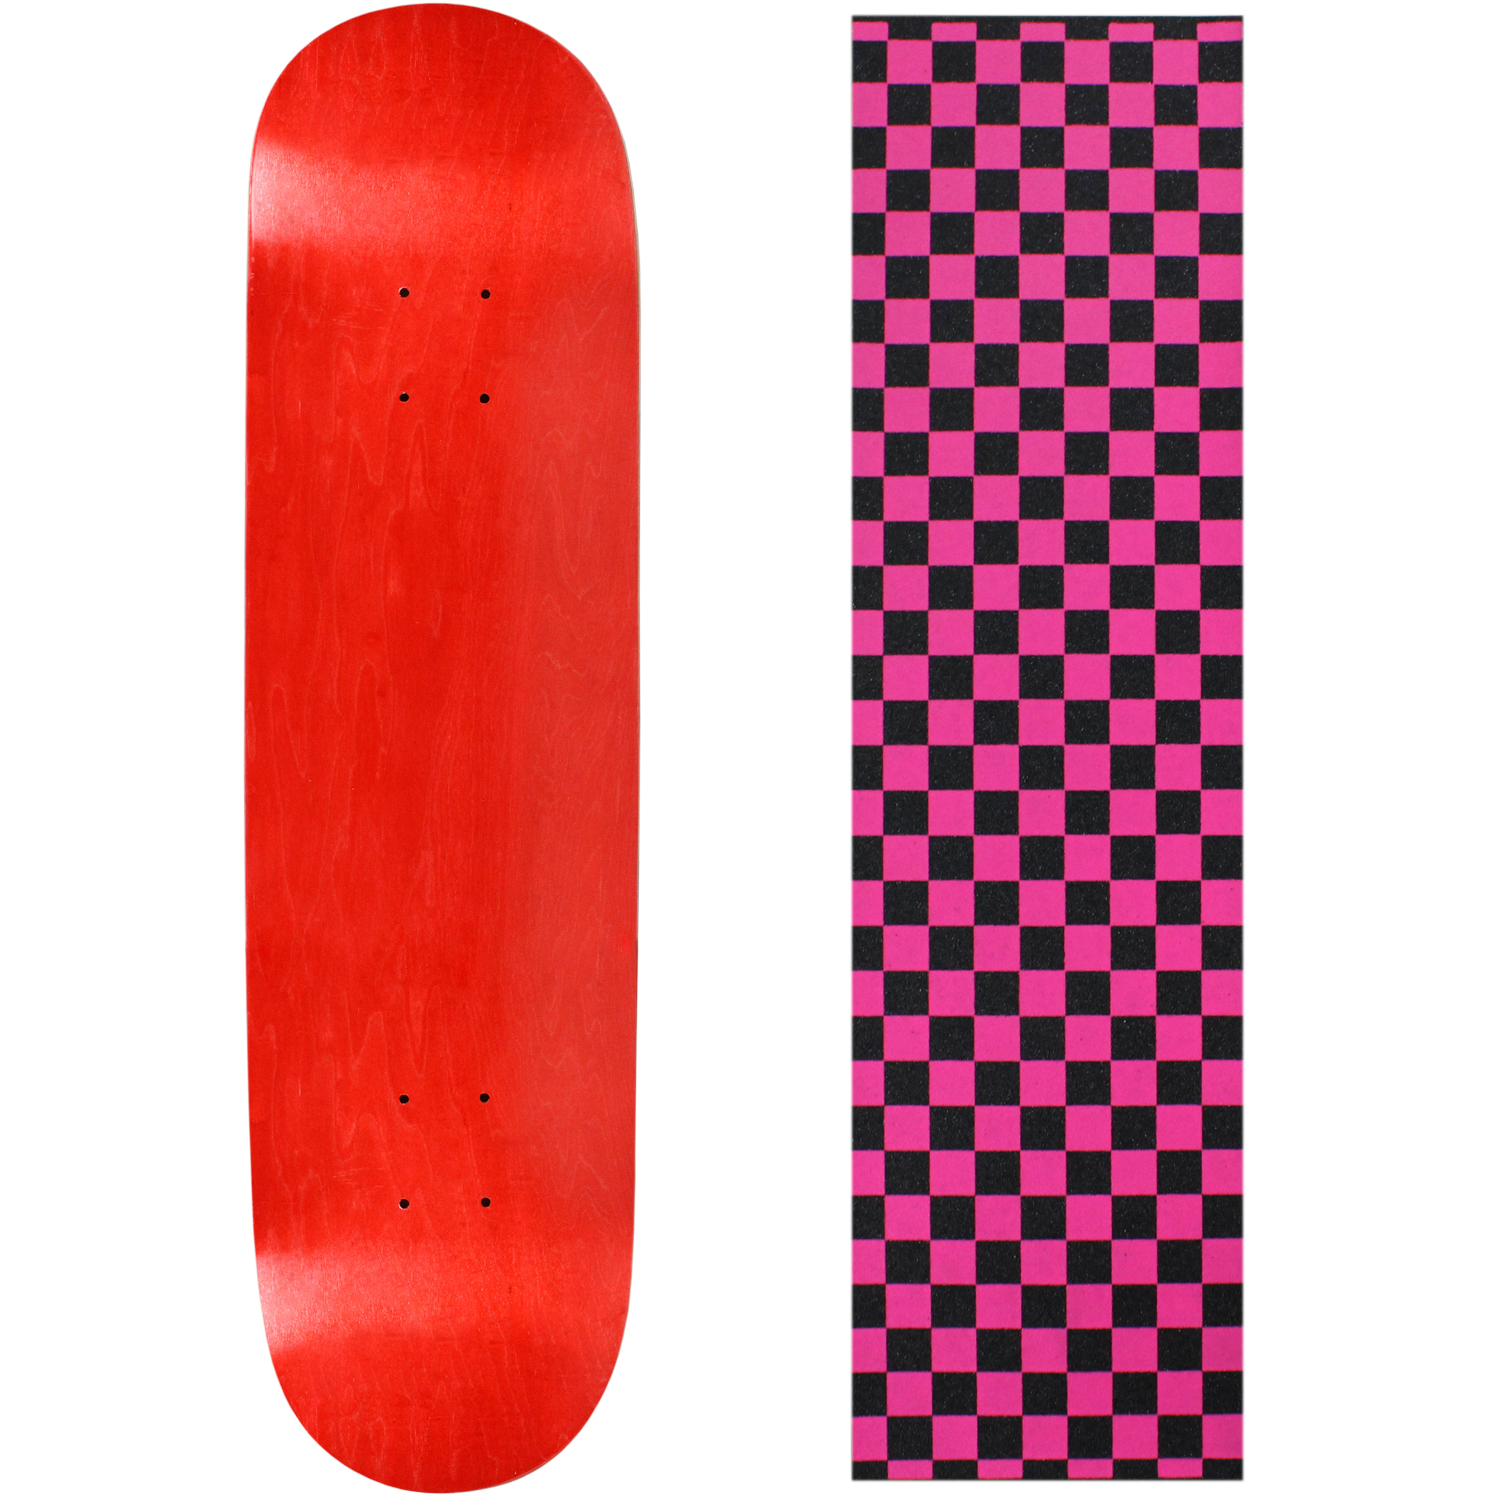 Moose Skateboard Deck Pro 7-Ply Canadian Maple STAINED RE...